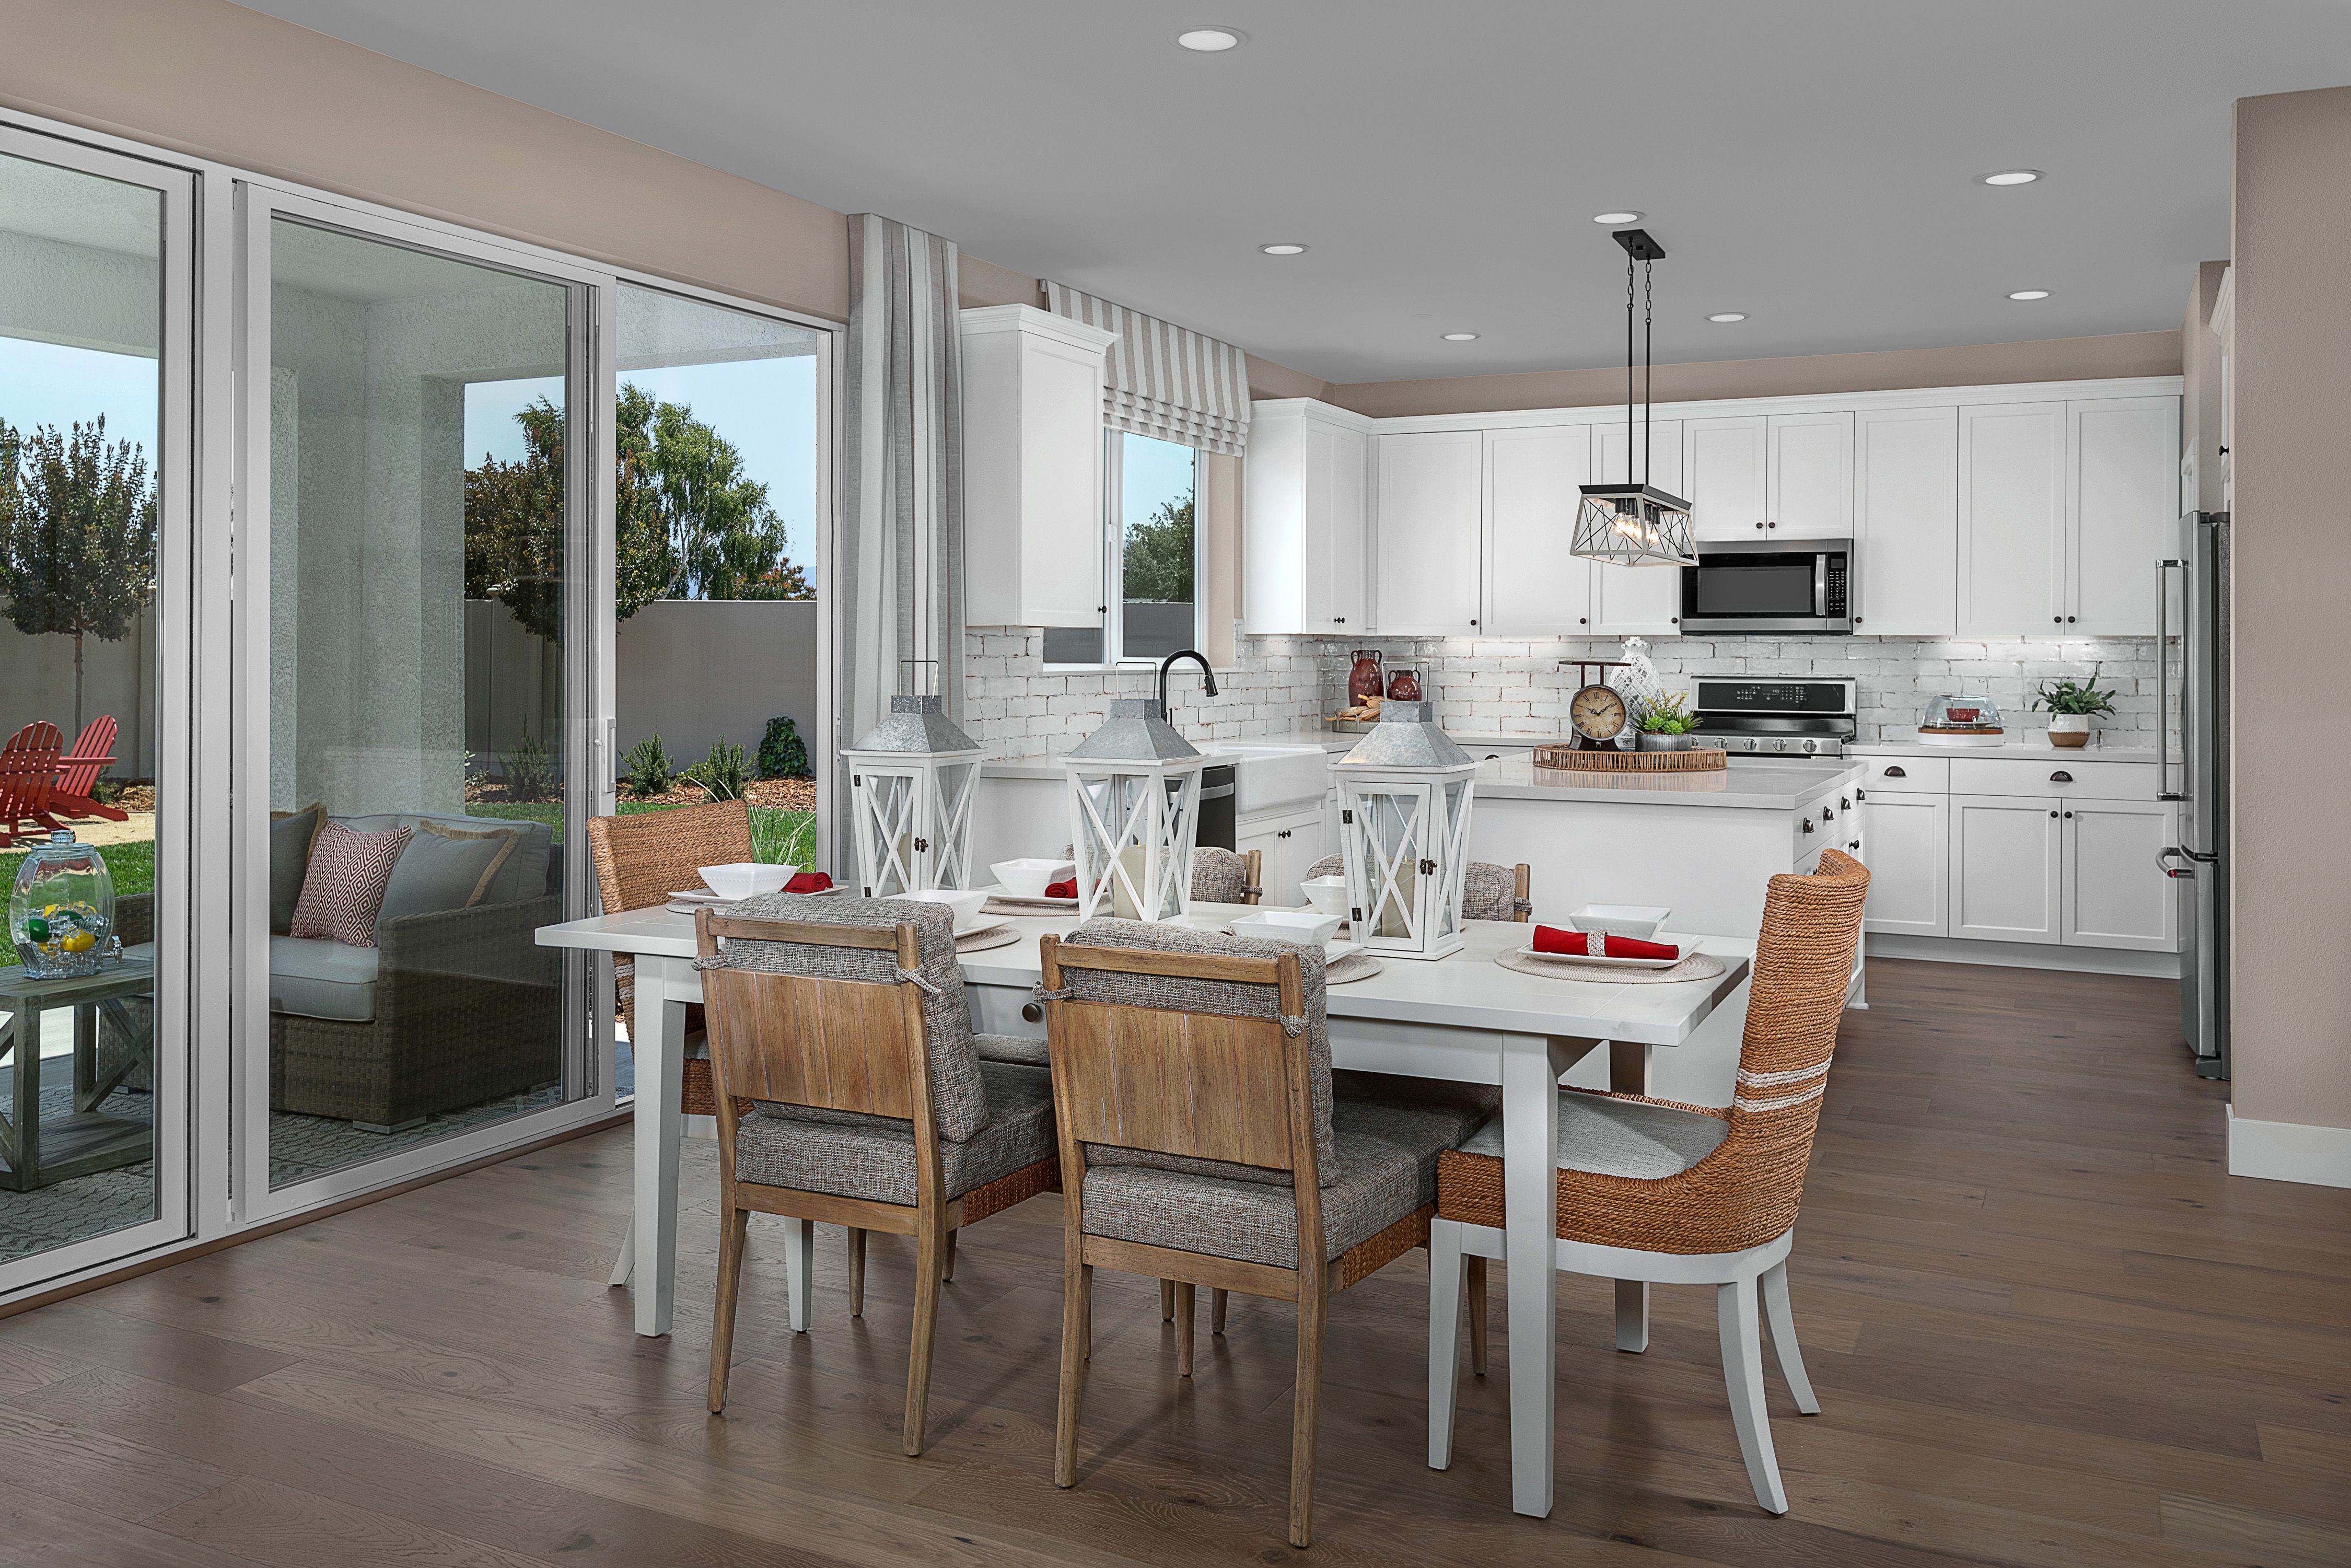 Kitchen featured in the Mayfair Residence 3 By Kiper Homes in Santa Cruz, CA